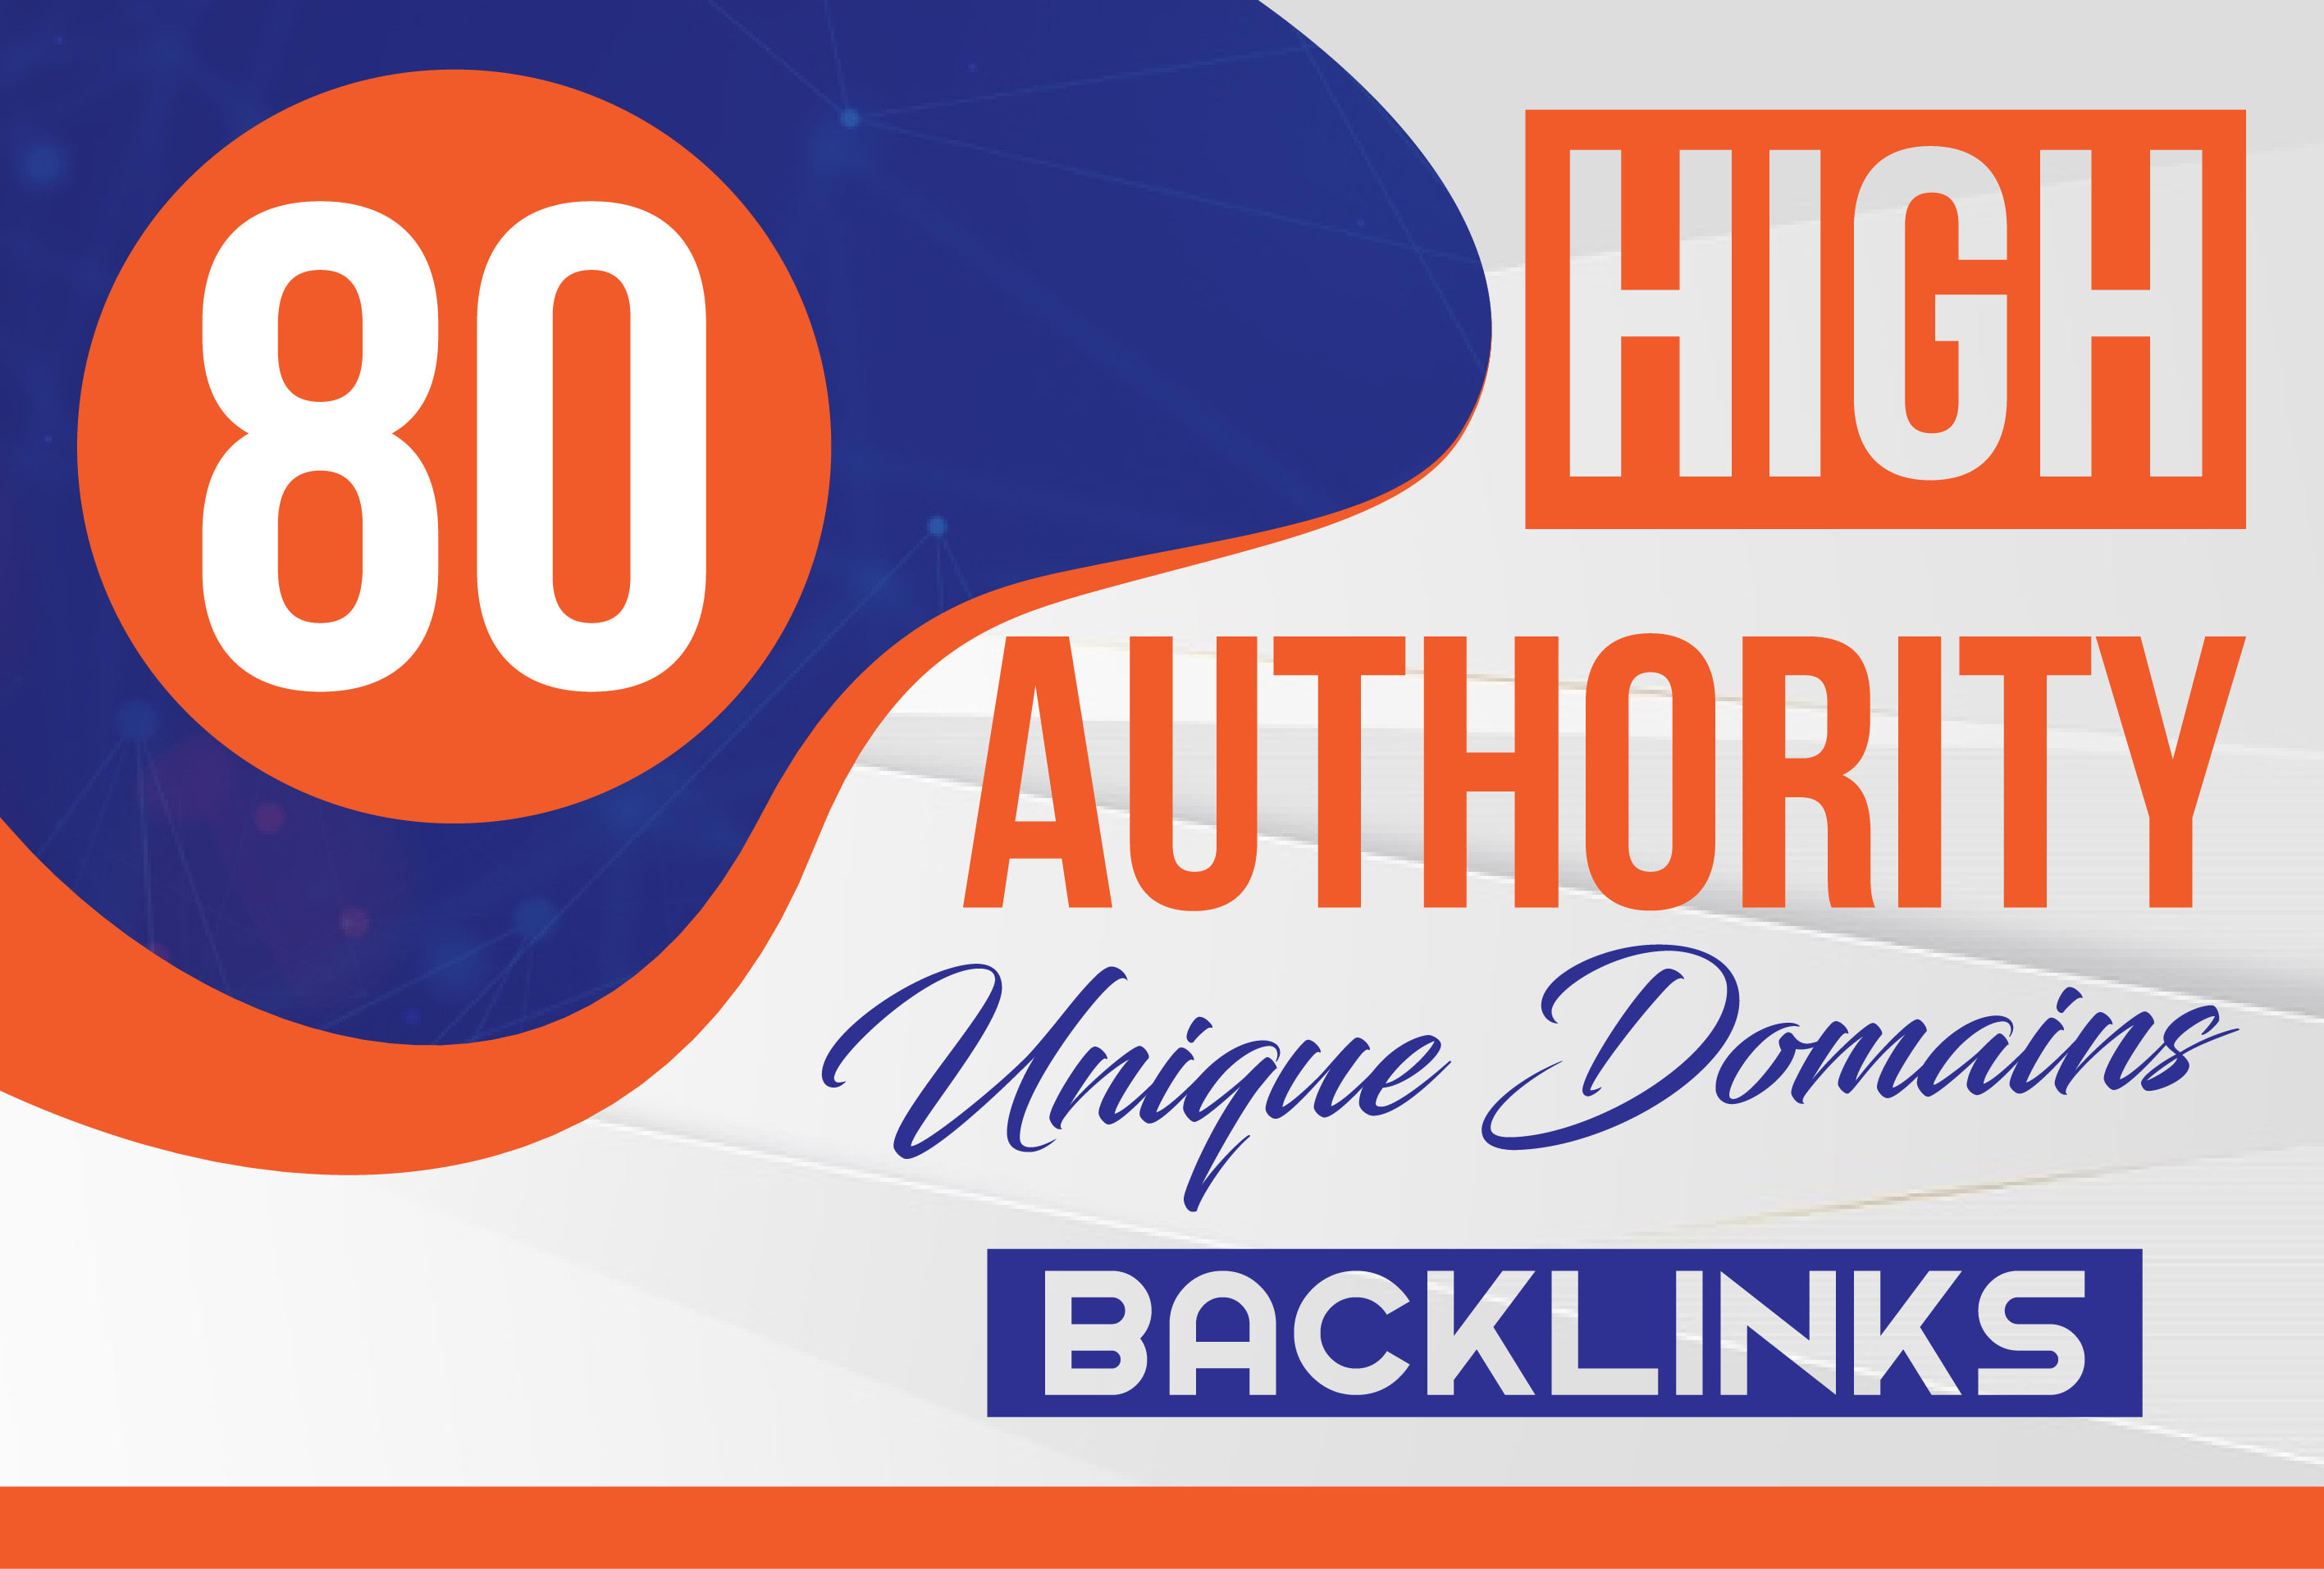 80 da high authority unique domains backlinks contextual